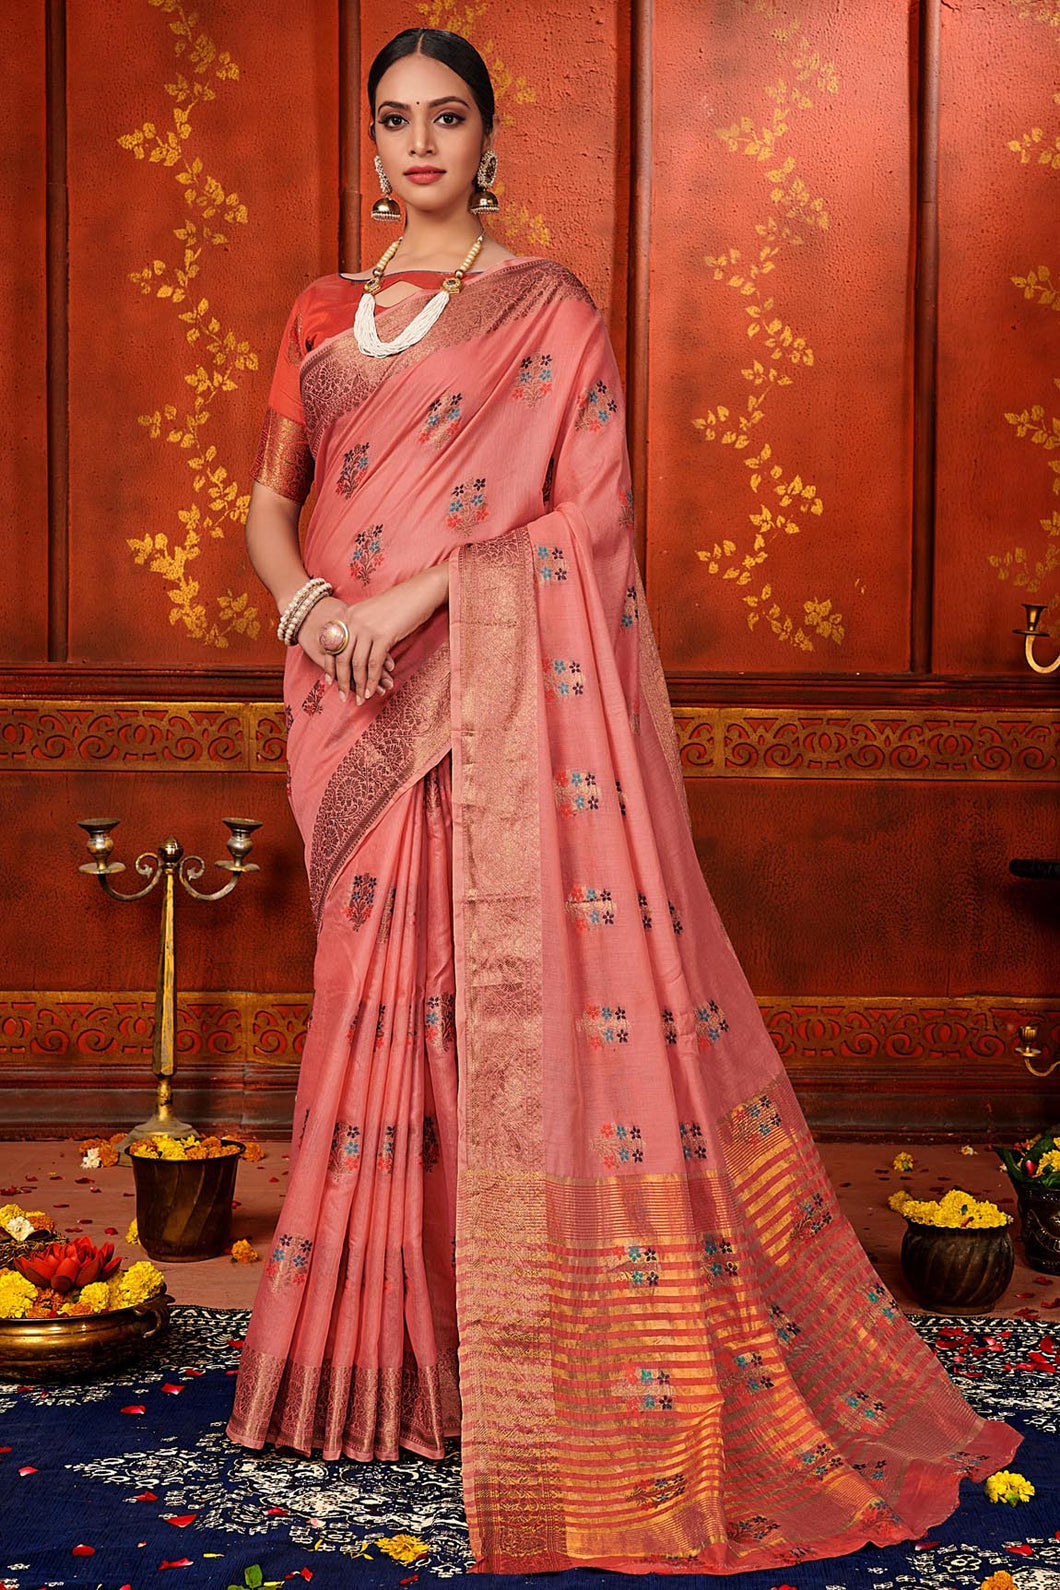 Bhelpuri Light Maroon Mina Art Silk Woven Saree with Blouse Piece